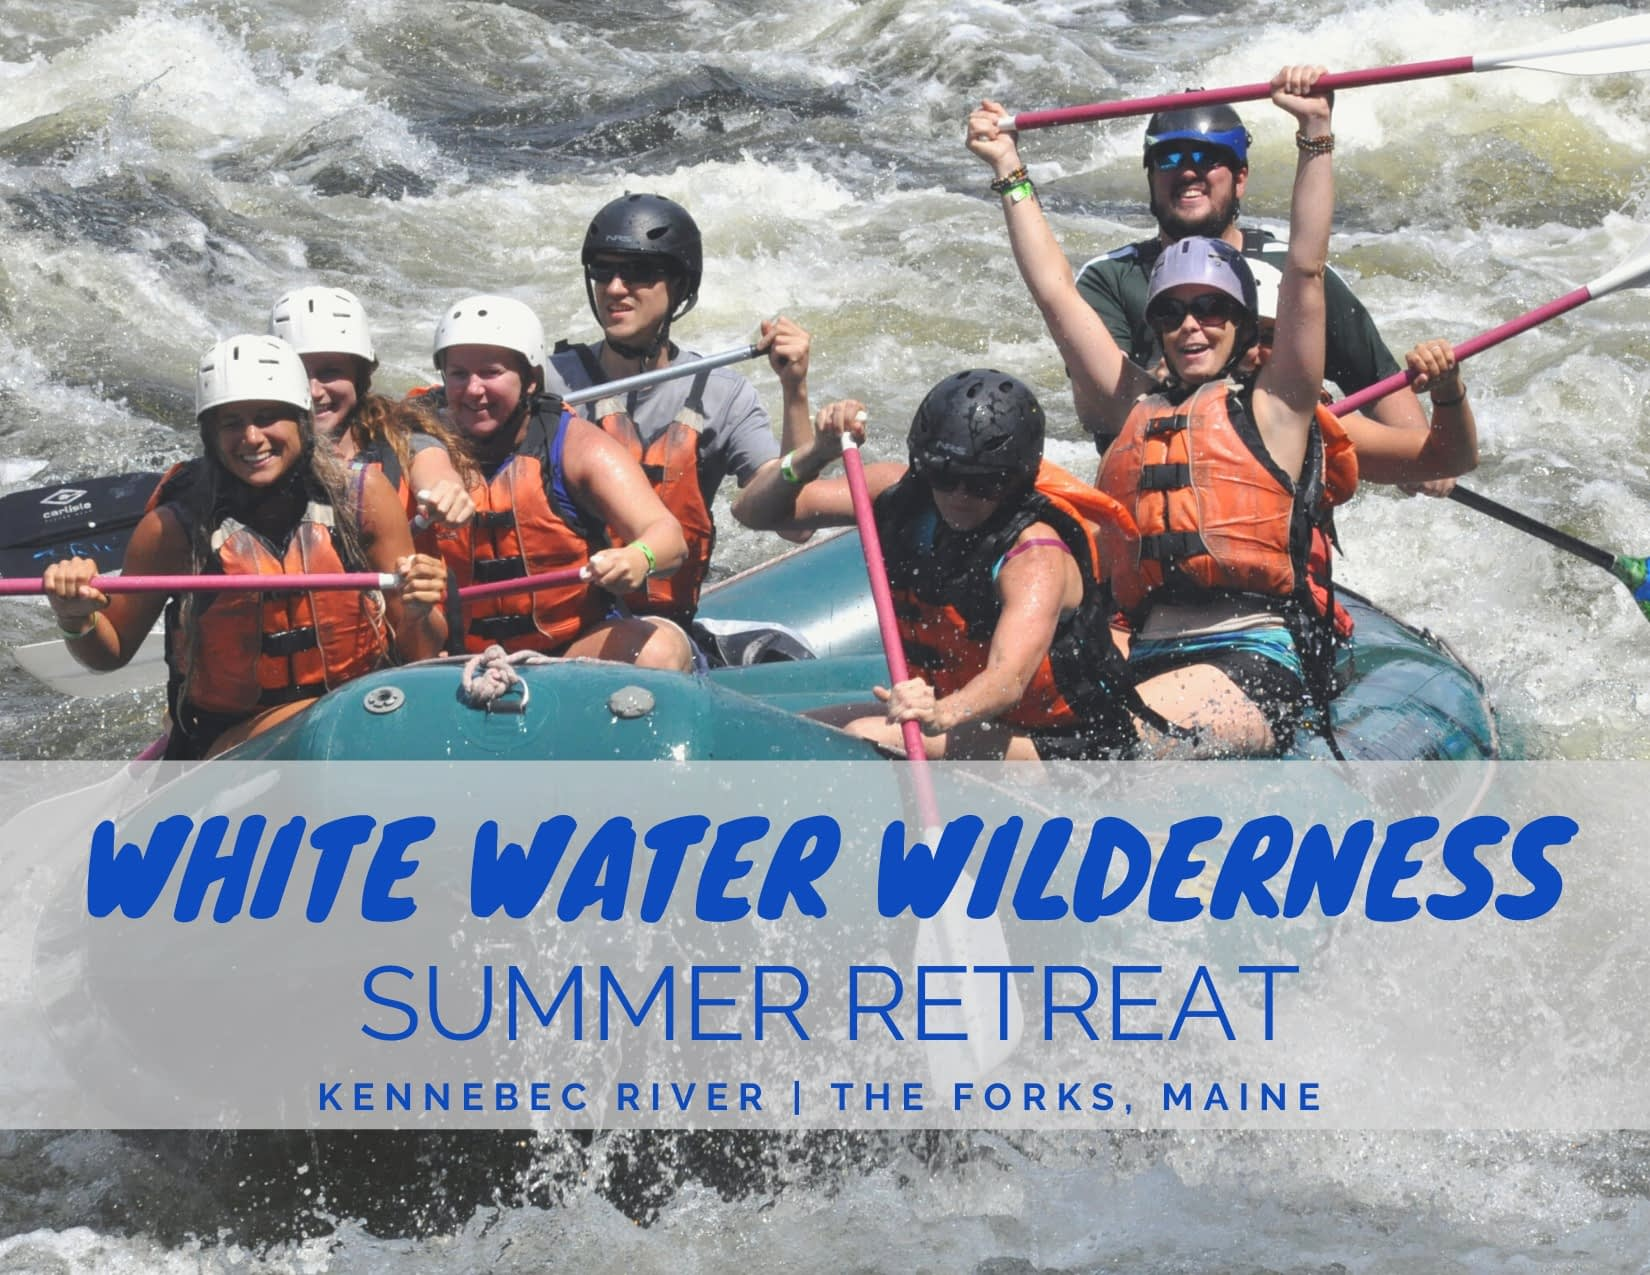 Whitewater Wilderness Adventure